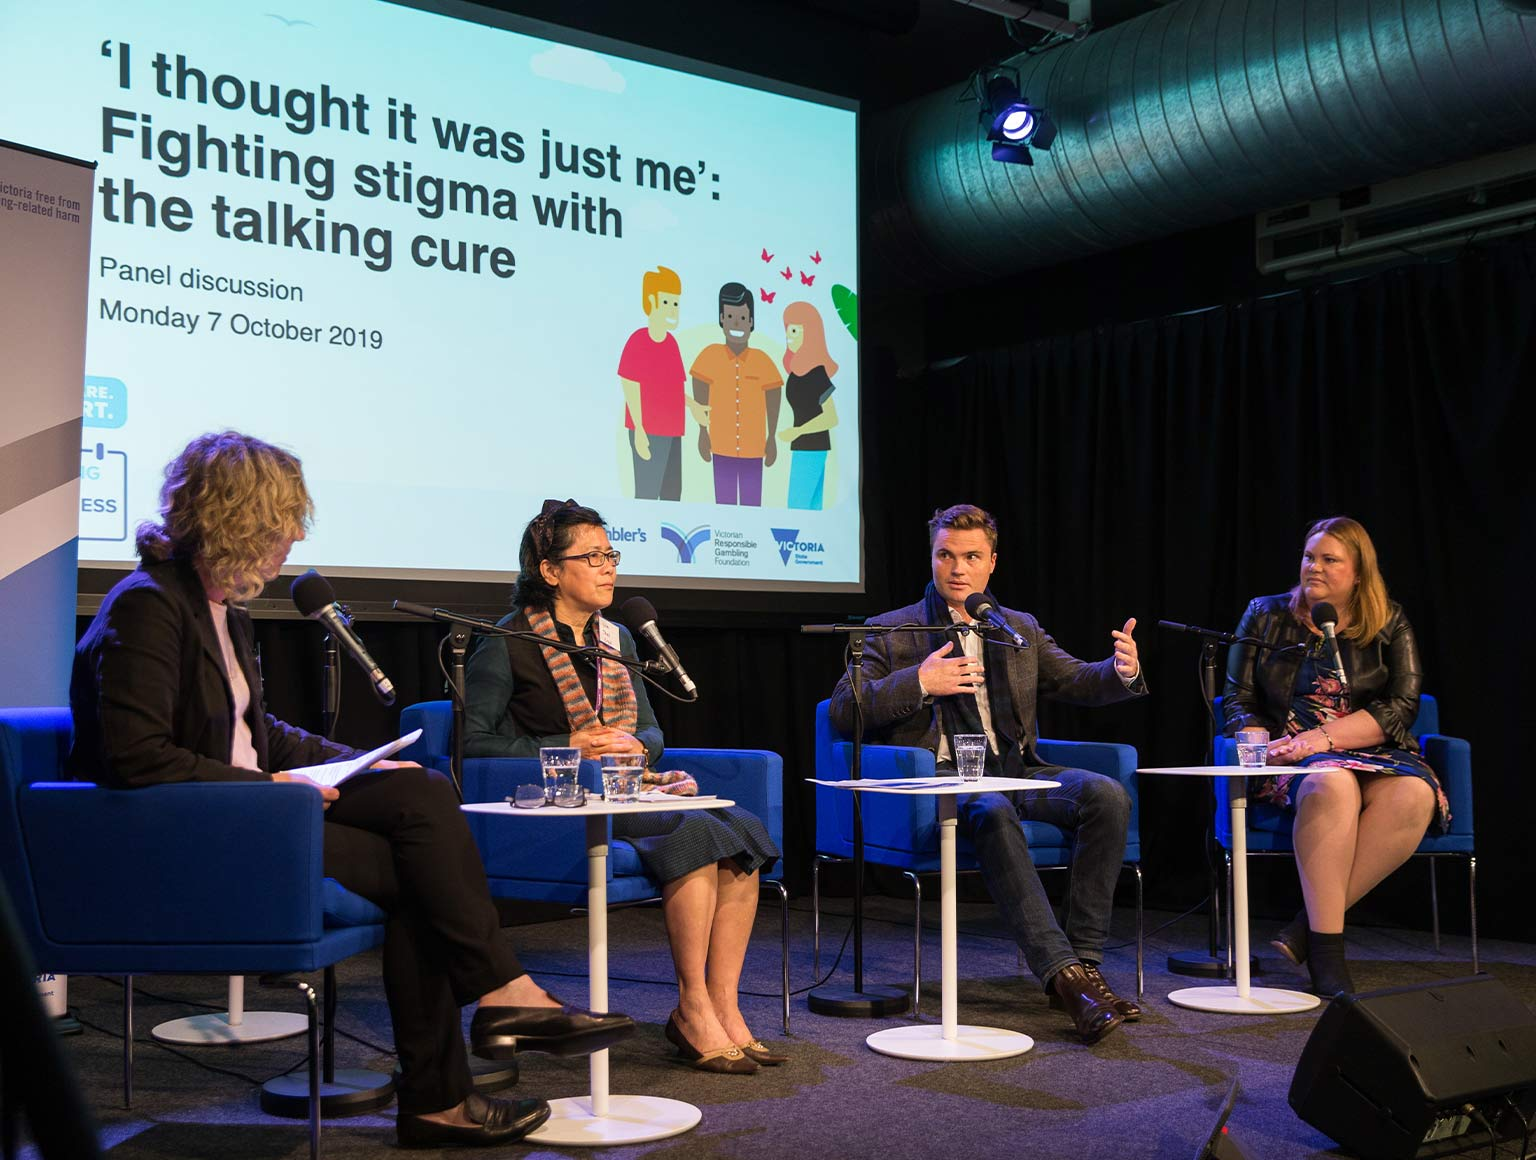 Photo of three women and one man seated on a stage, talking. Behind them a projected screen says: 'I thought it was just me': fighting stigma with the talking cure, Panel discussion, Monday 7 October 2019.